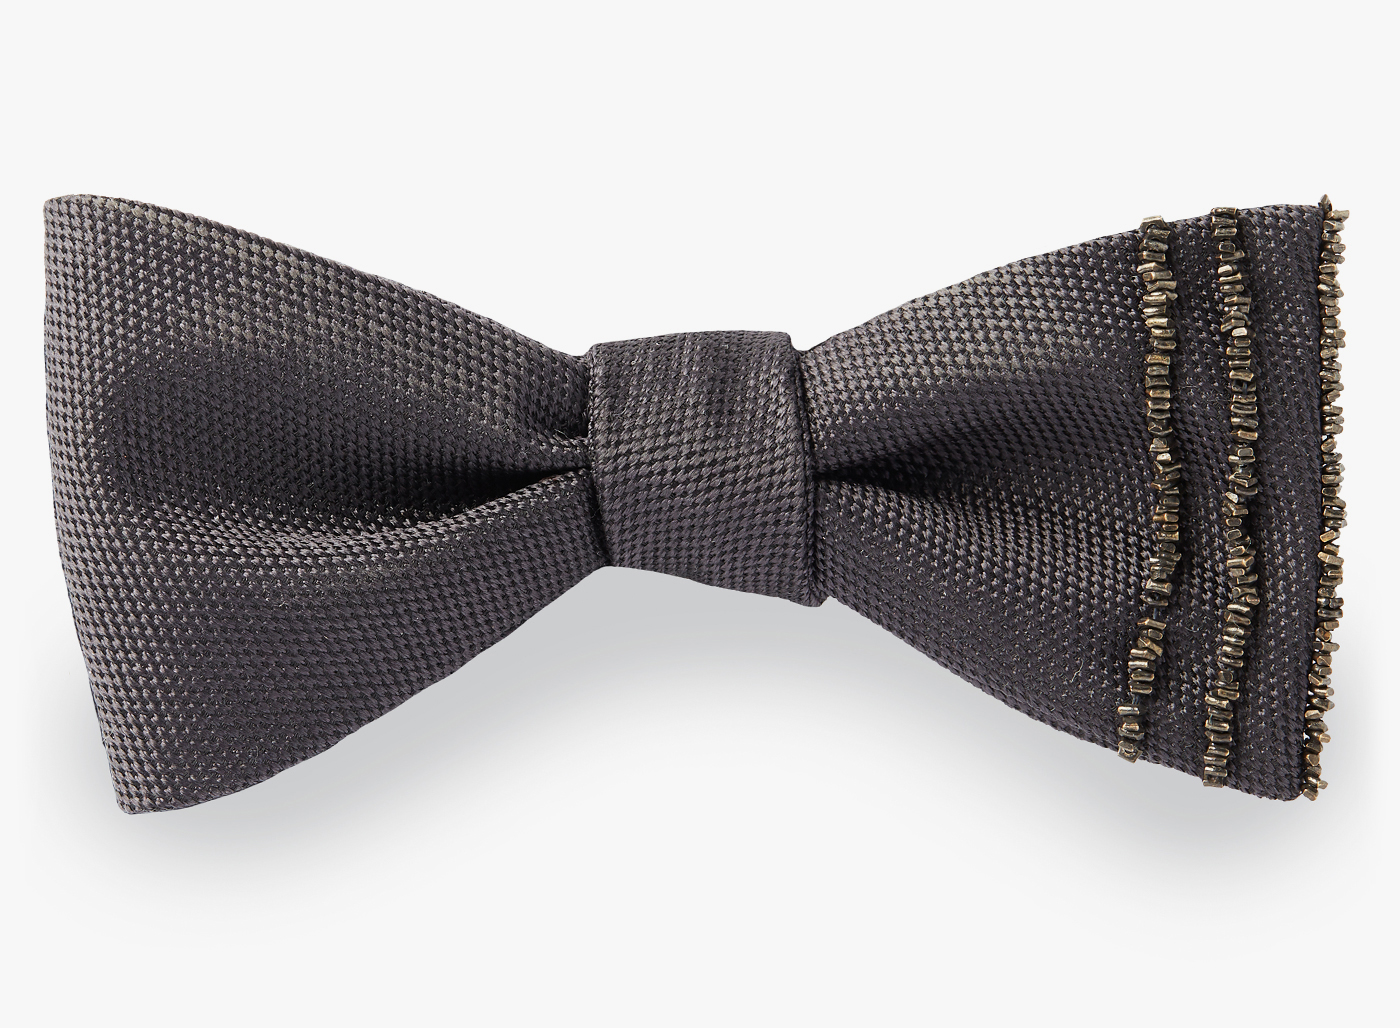 Image of 3 Beaded Stripes Bowtie